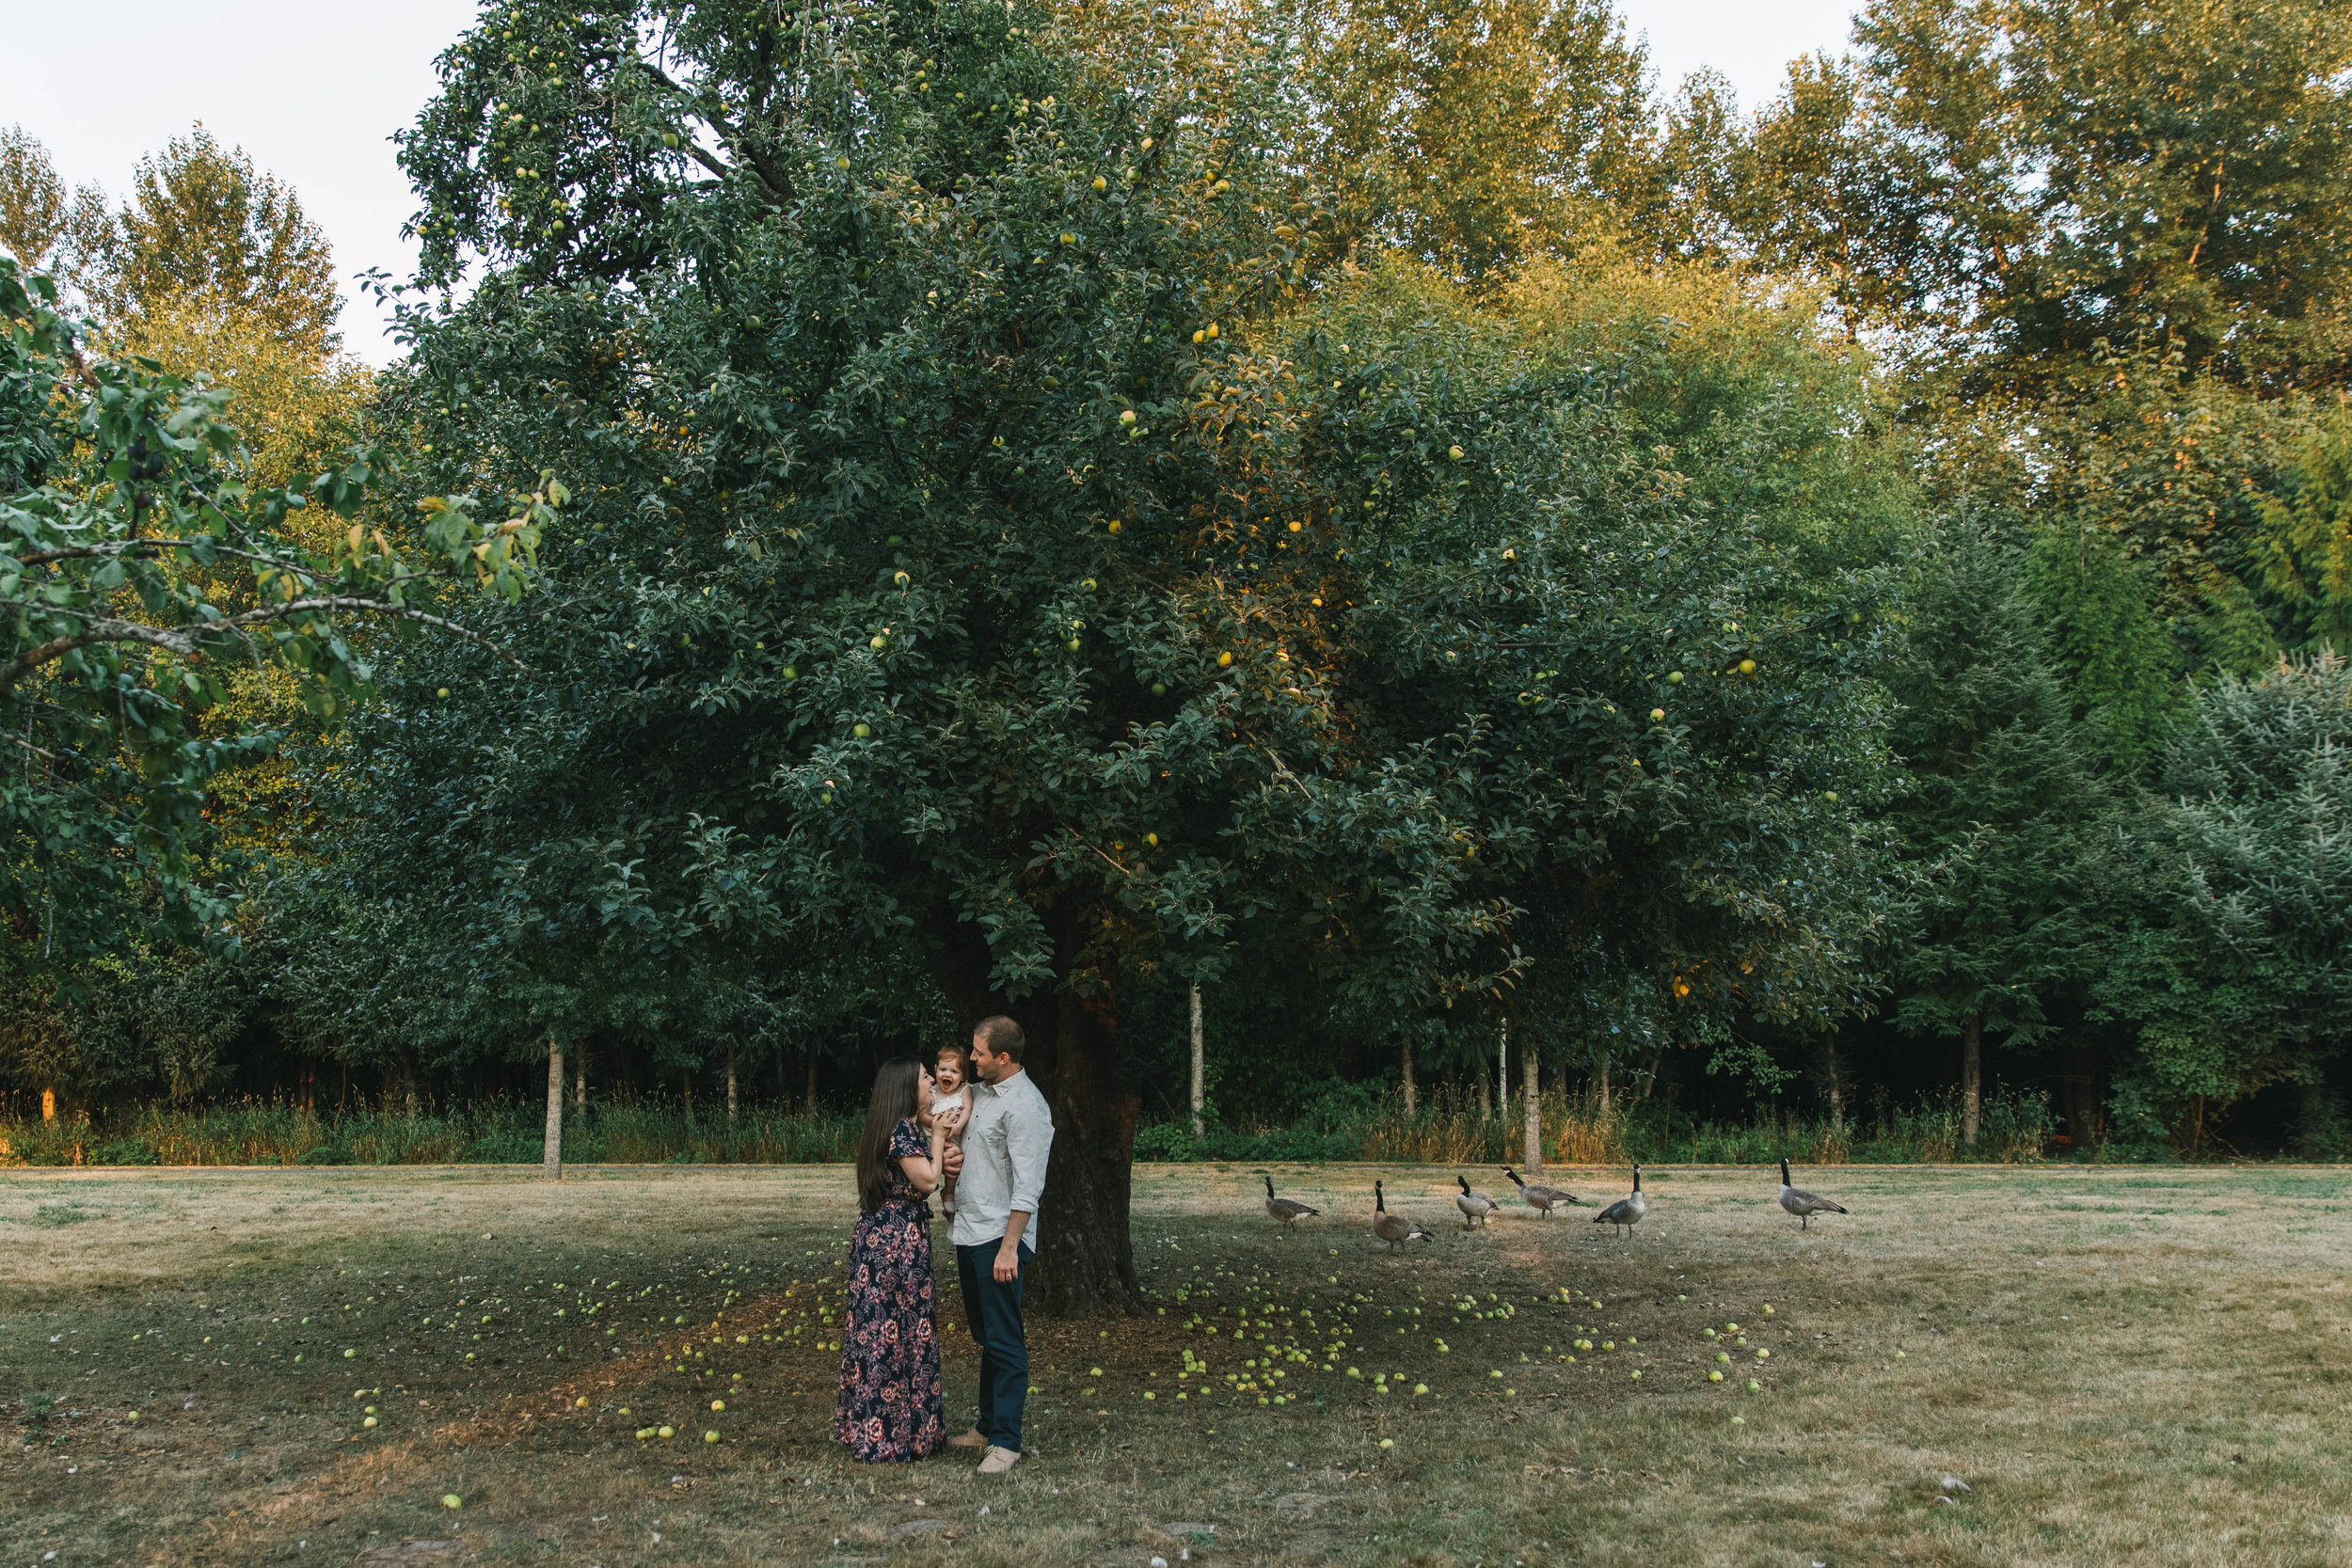 Playful and sweet family session in Issaquah at golden hour and twilight Mom and Dad with their toddler photographed by Chelsea Macor Photography in a playful and intimate way-6.jpg